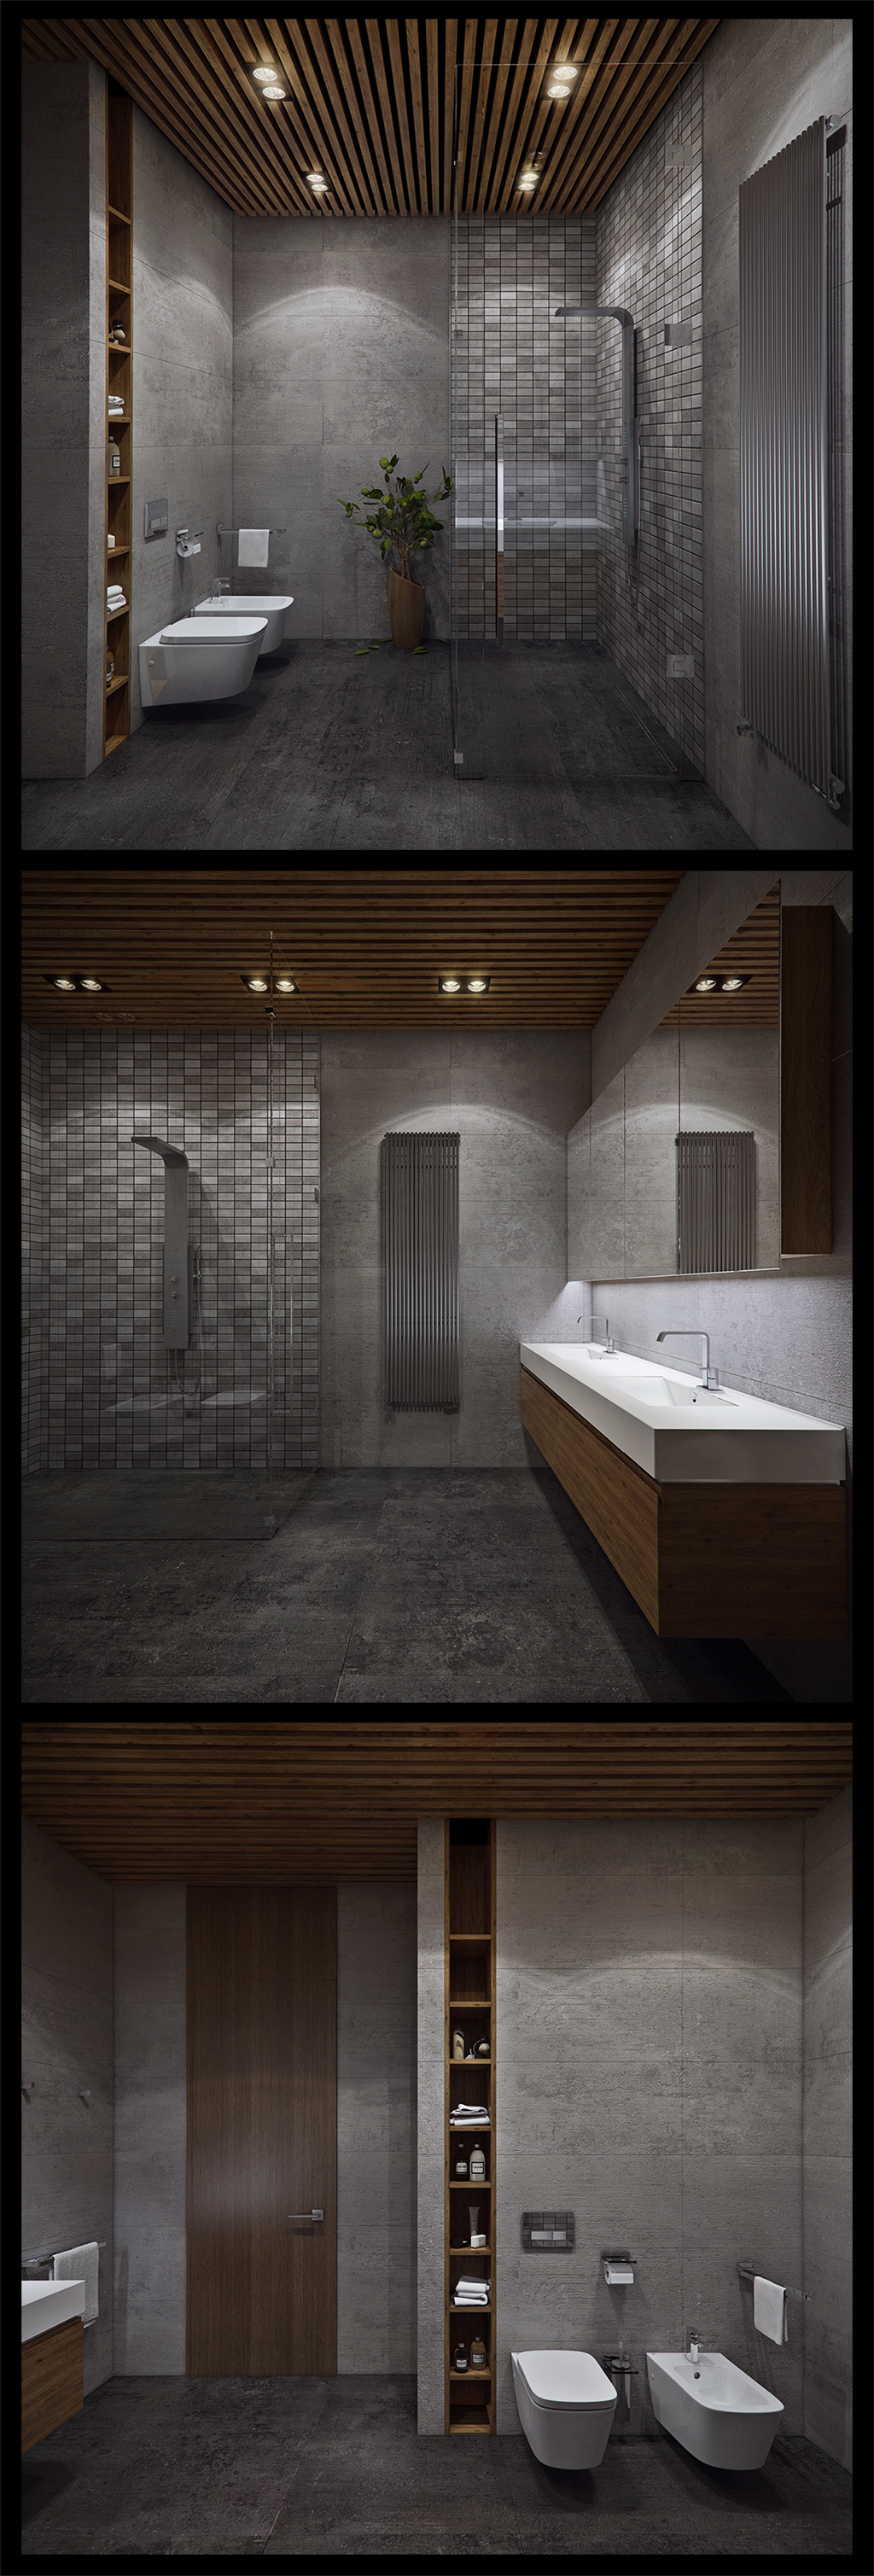 Bathroom Design - cover